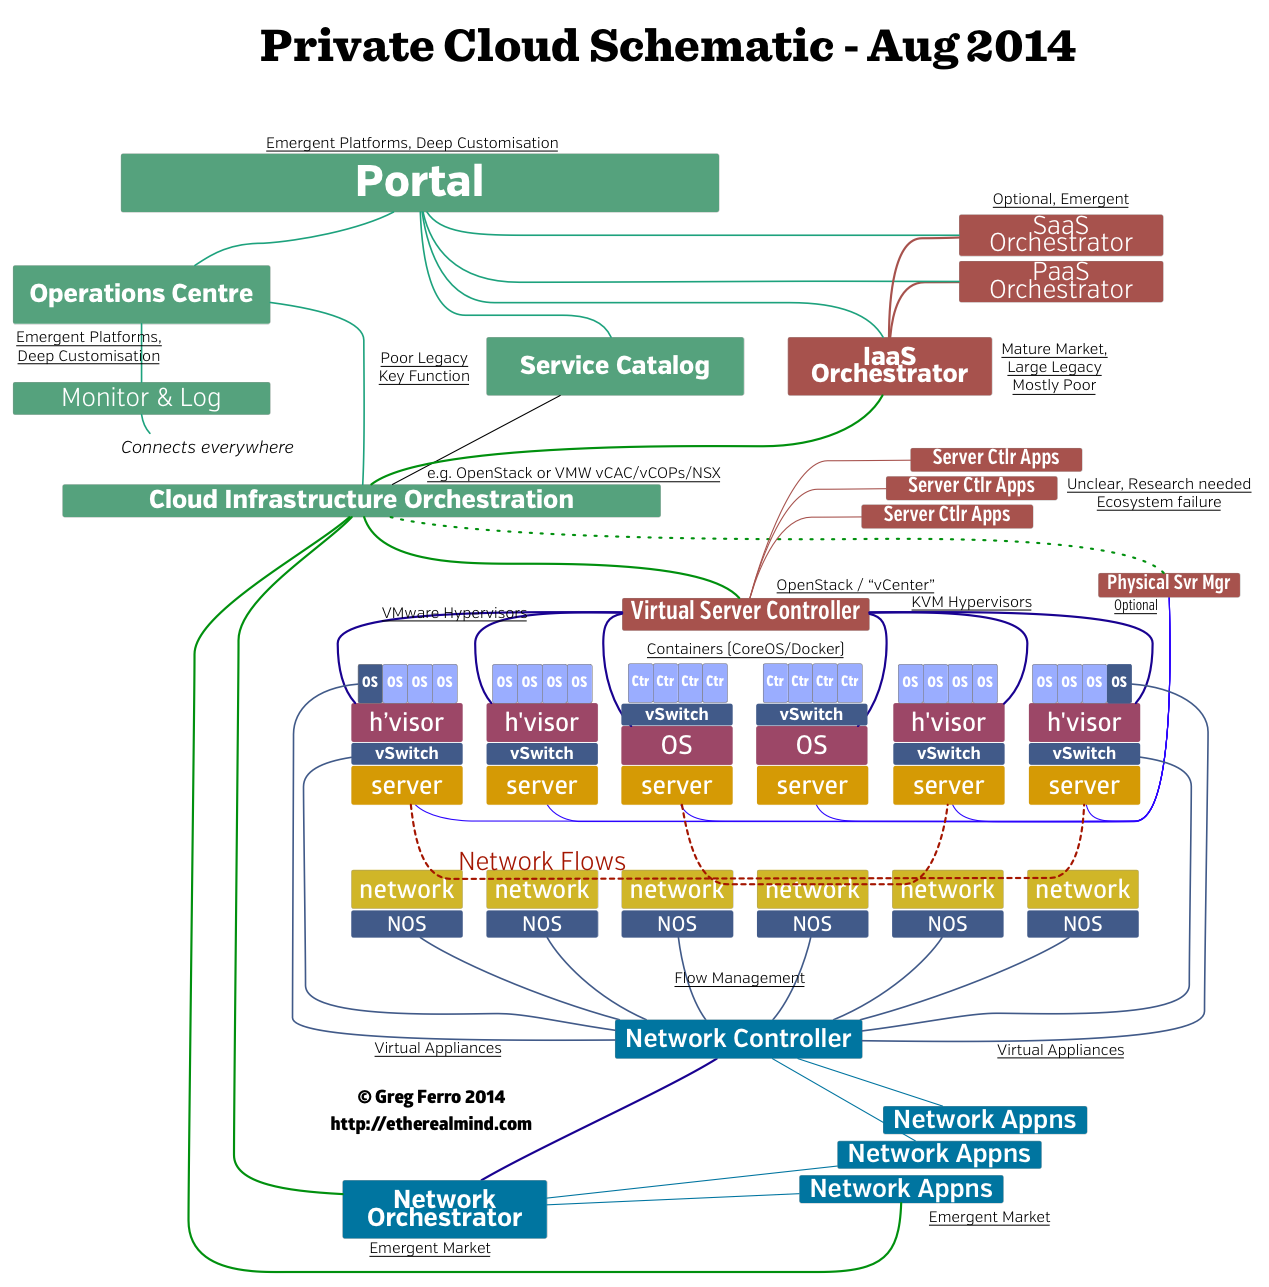 My Private Cloud Block Architecture Diagram - EtherealMind